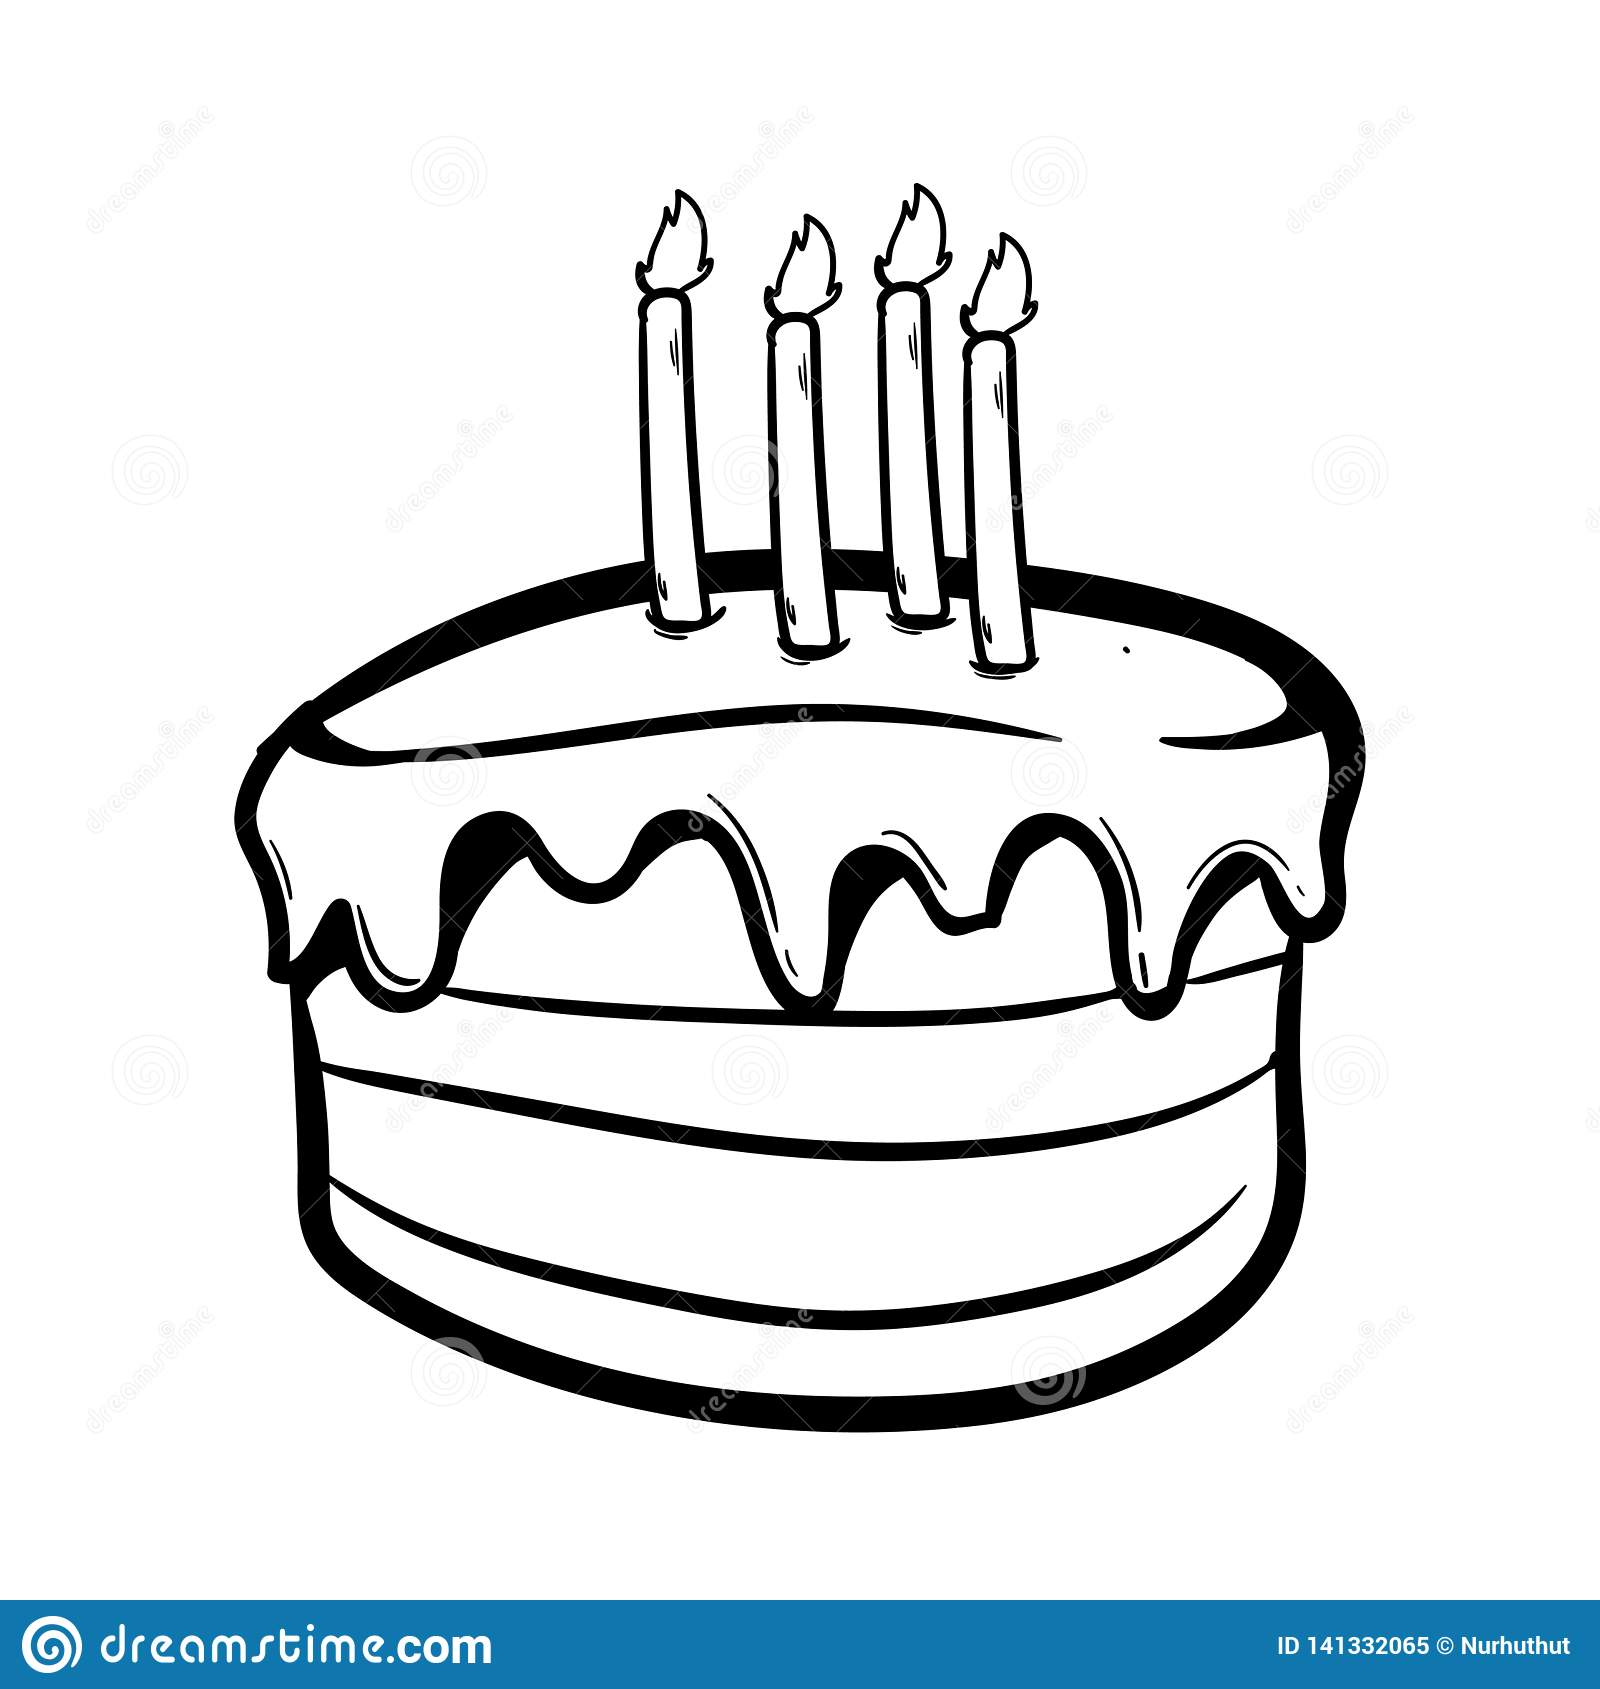 Awe Inspiring Birthday Cake With Outline Using Doodle Art Stock Illustration Funny Birthday Cards Online Alyptdamsfinfo